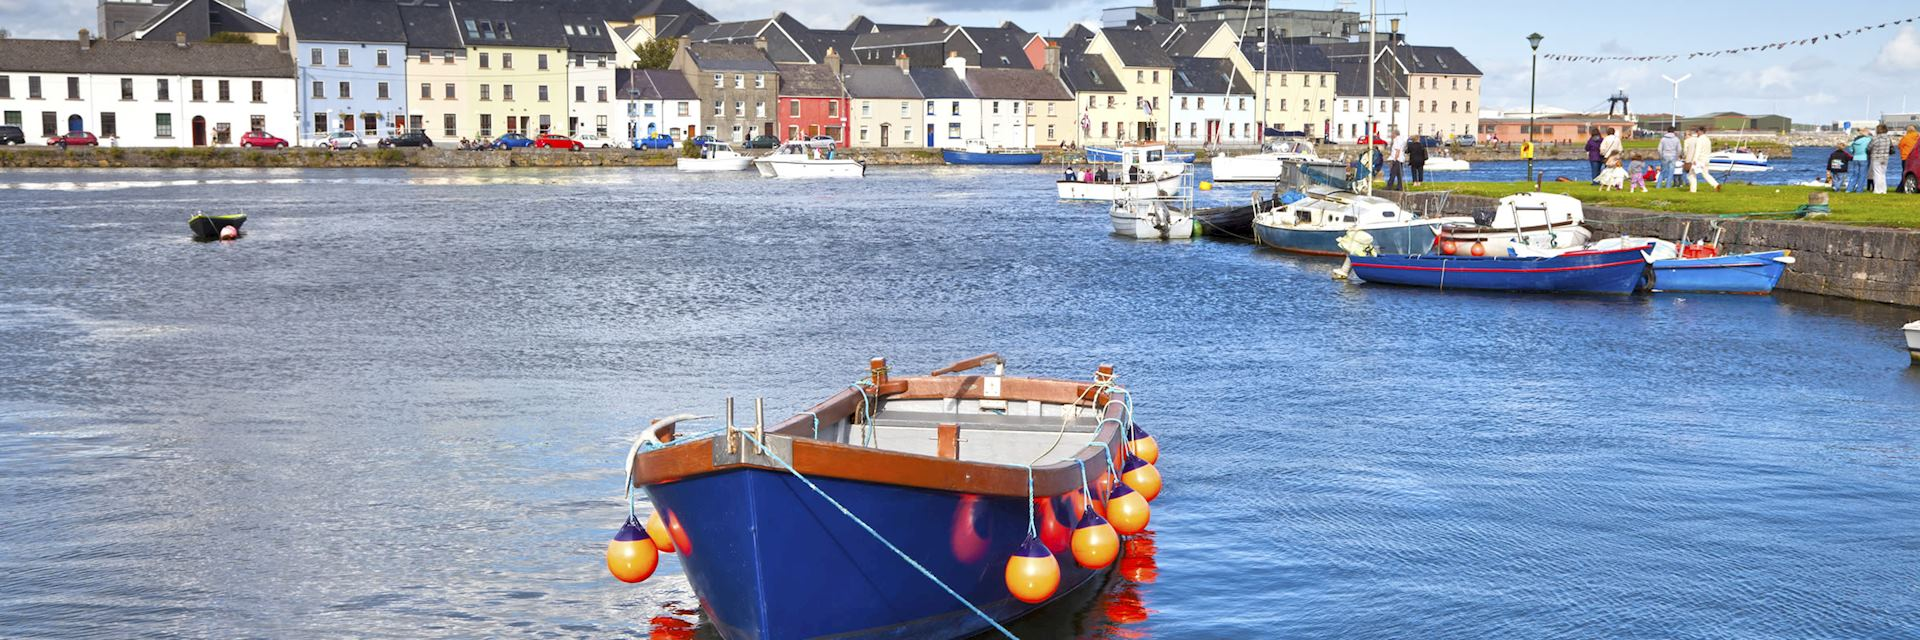 Boat in Galway Bay